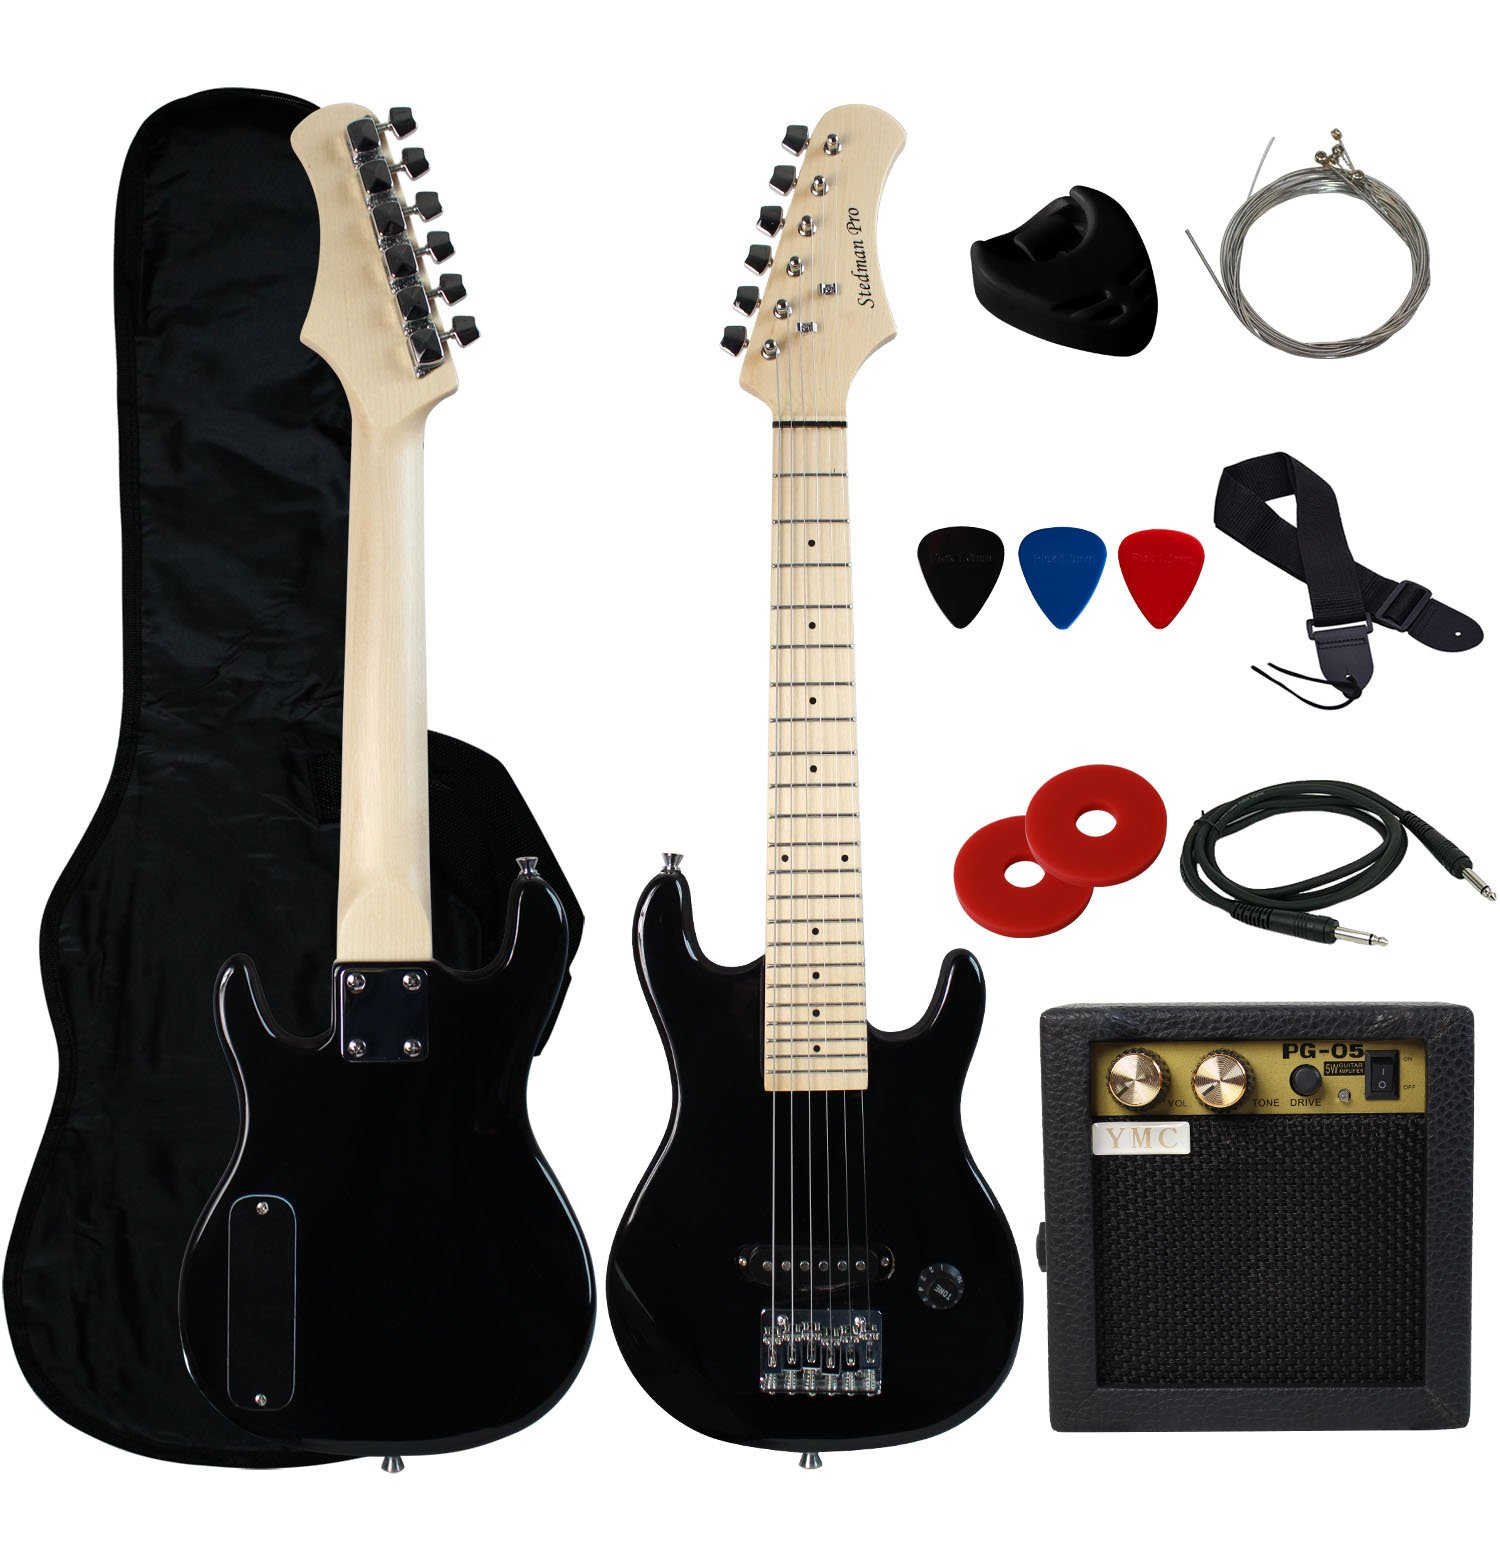 Stedman Pro 30'' Kids Electric Guitar Pack With 5-Watt Amp, Gig Bag,Strap,Cable,Strings,Picks,and Wrench,Guitar Combo Accessory Kit--Black by YMC